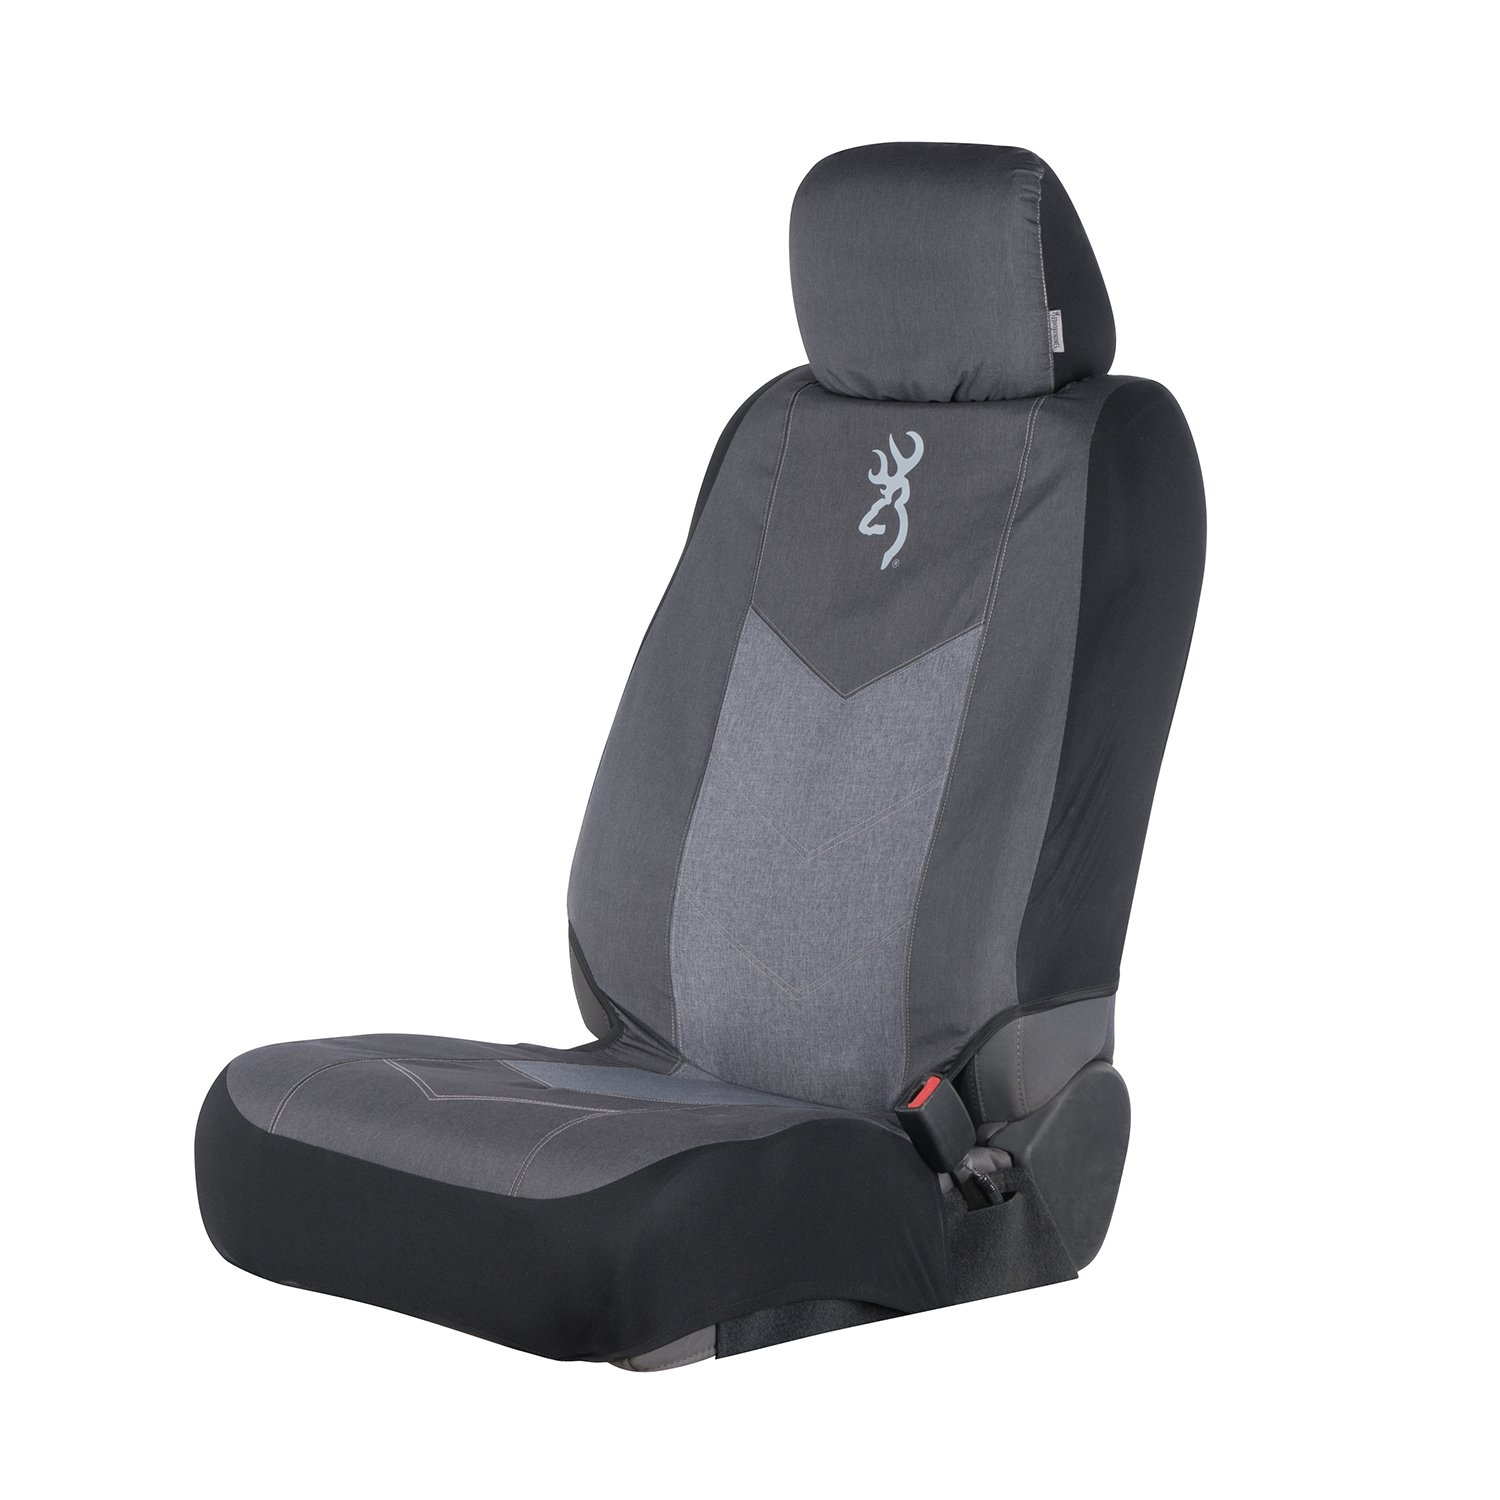 Browning Camo Seat Cover C000118800299 Low Back SPG Heather Black Heather Black Single Signature Products Group Single